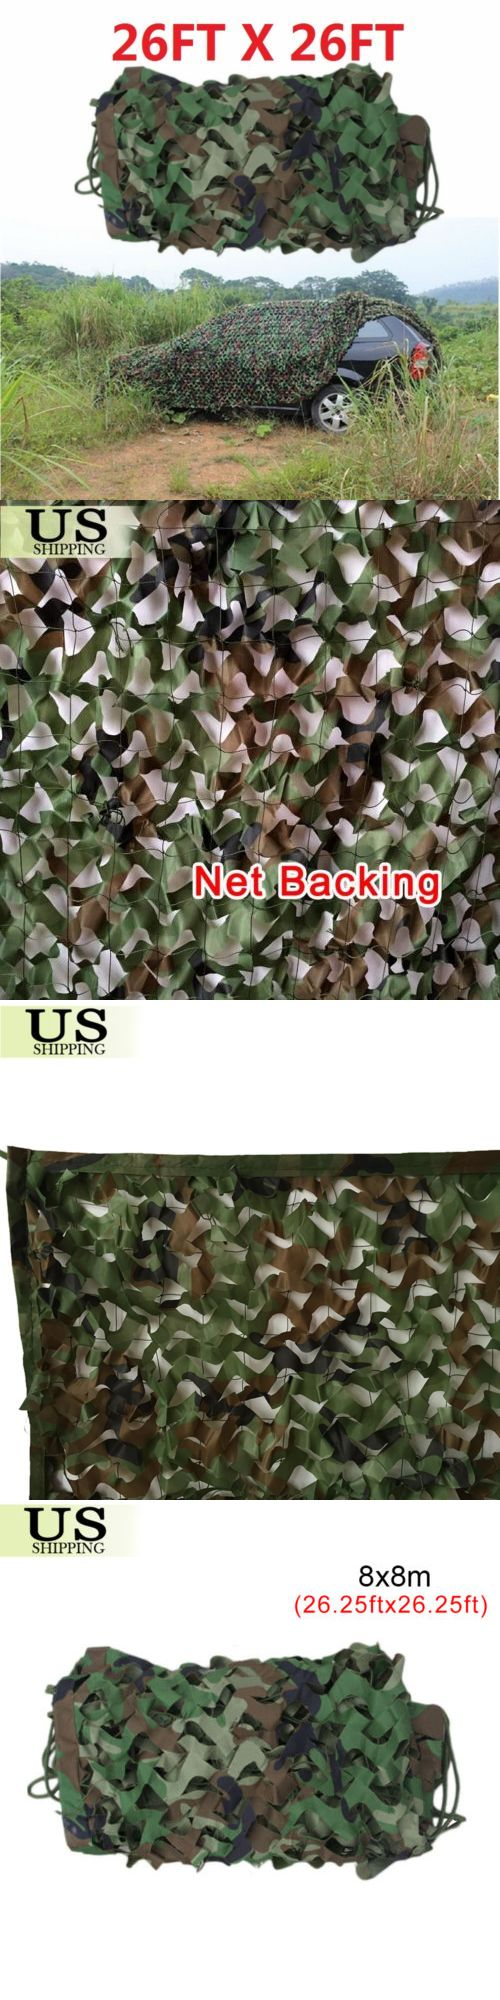 Tent and Canopy Accessories 36120: 26 X 26Ft Woodland Military Hide Army Camouflage Net Hunting Camo Netting 8X8m -> BUY IT NOW ONLY: $125.98 on eBay!